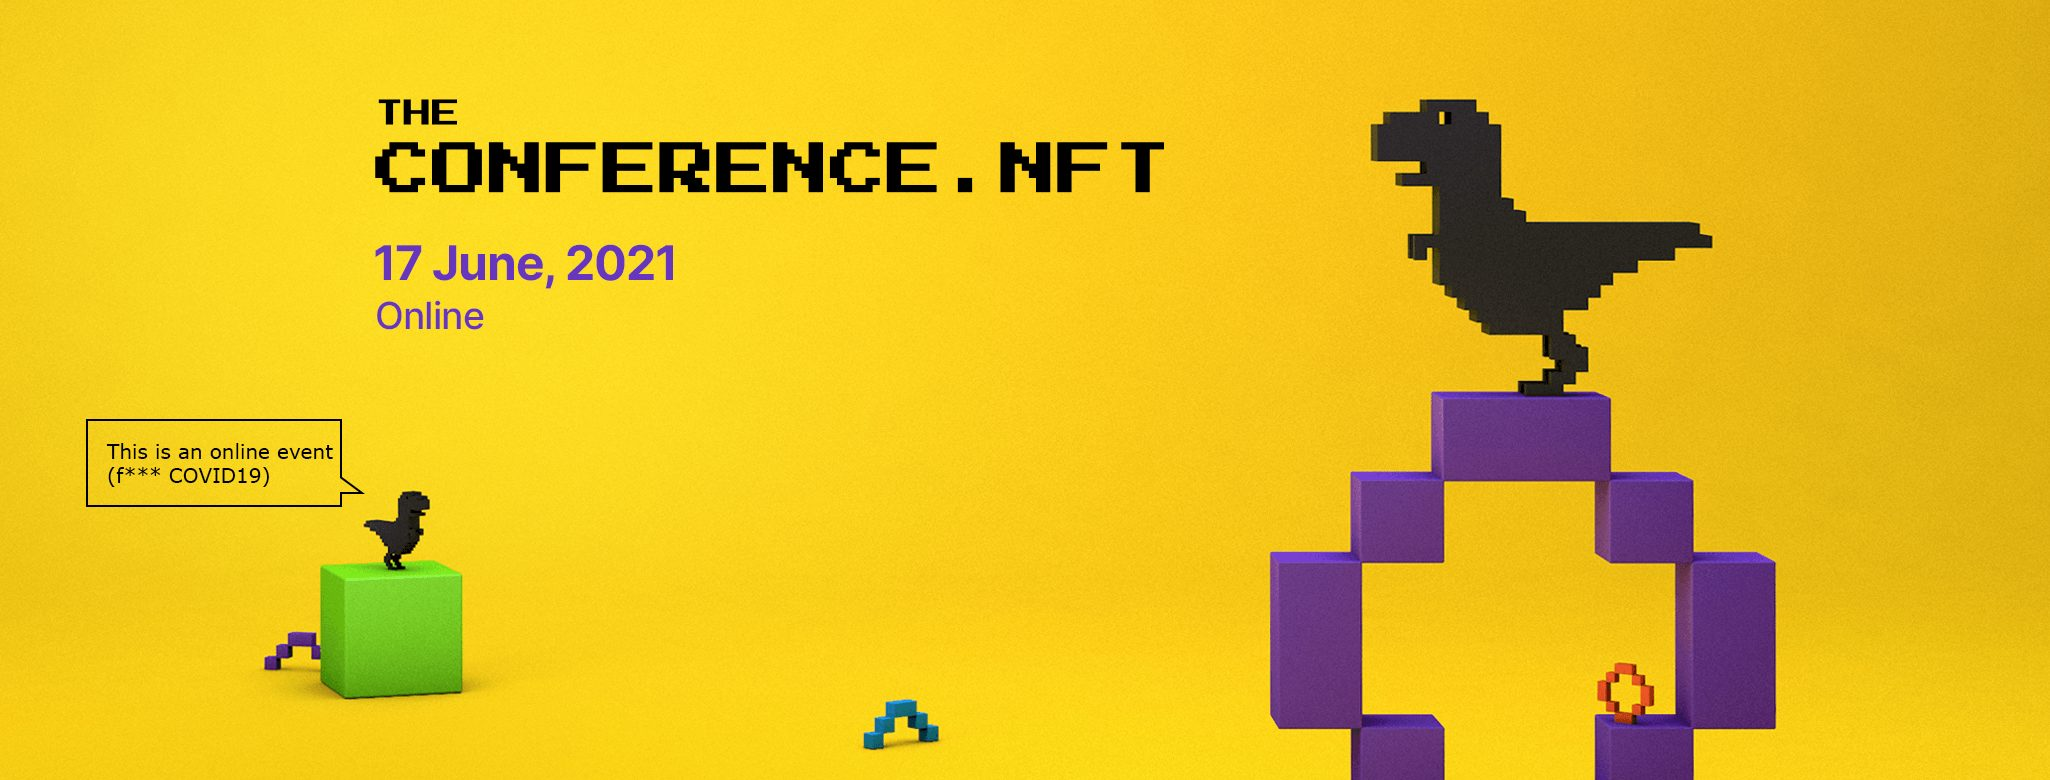 World's First The Conference.NFT Online Event